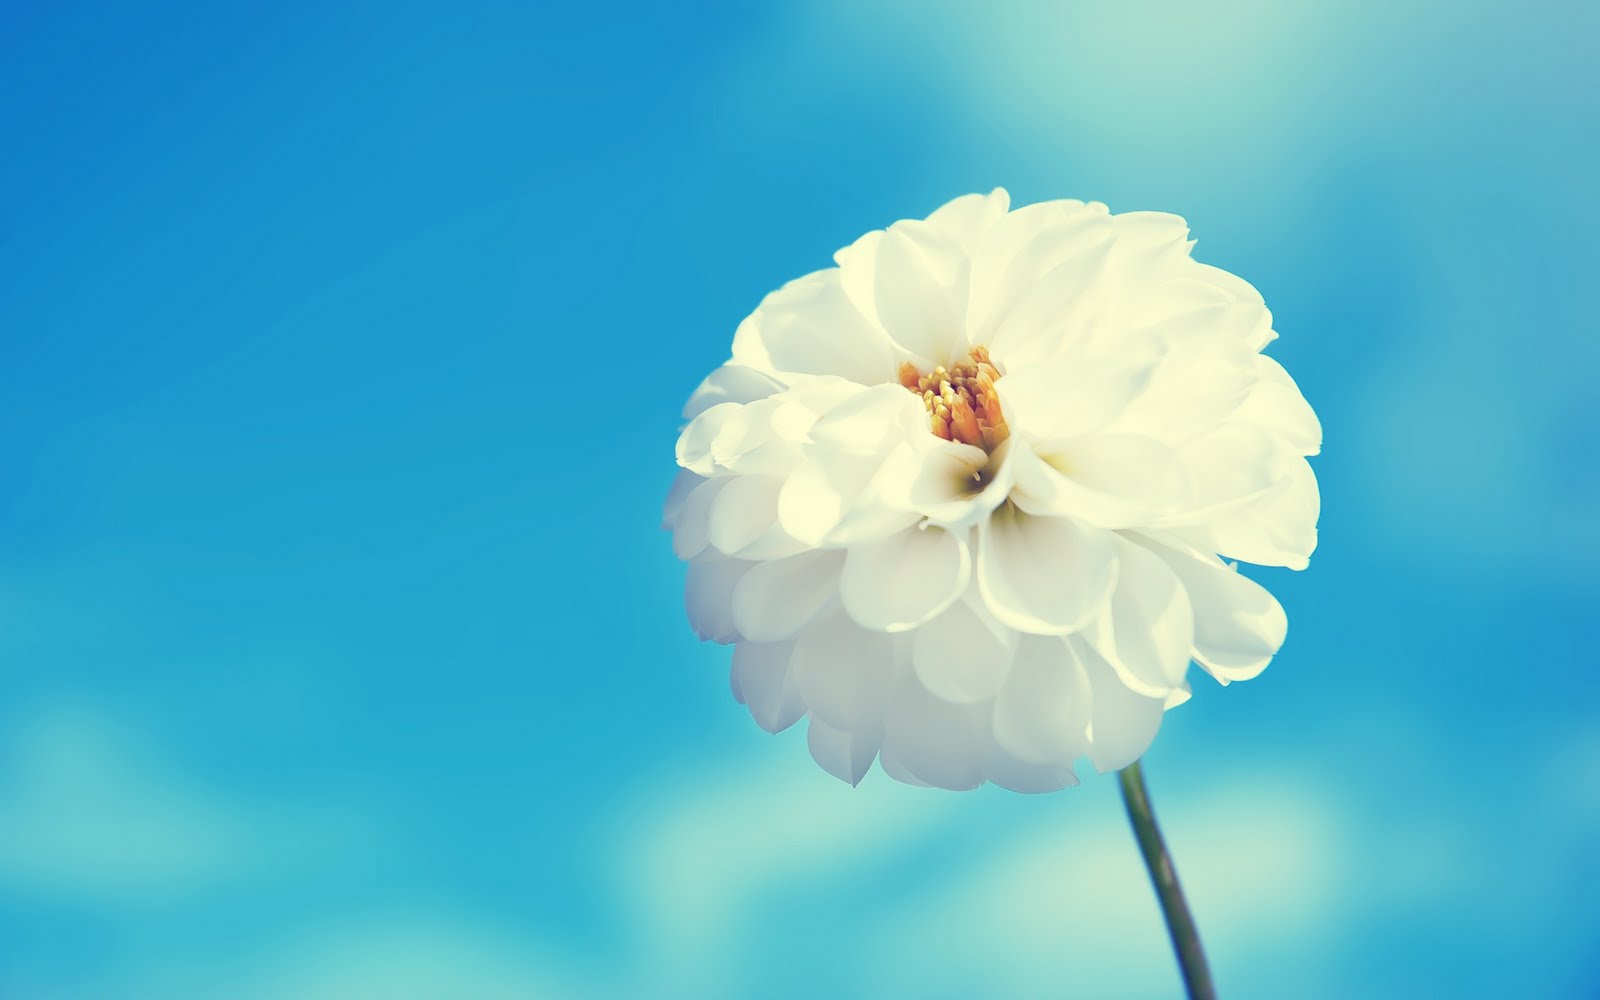 Blue And White Flowers Wallpaper Wallpapers Awesome White Flower Blue HD